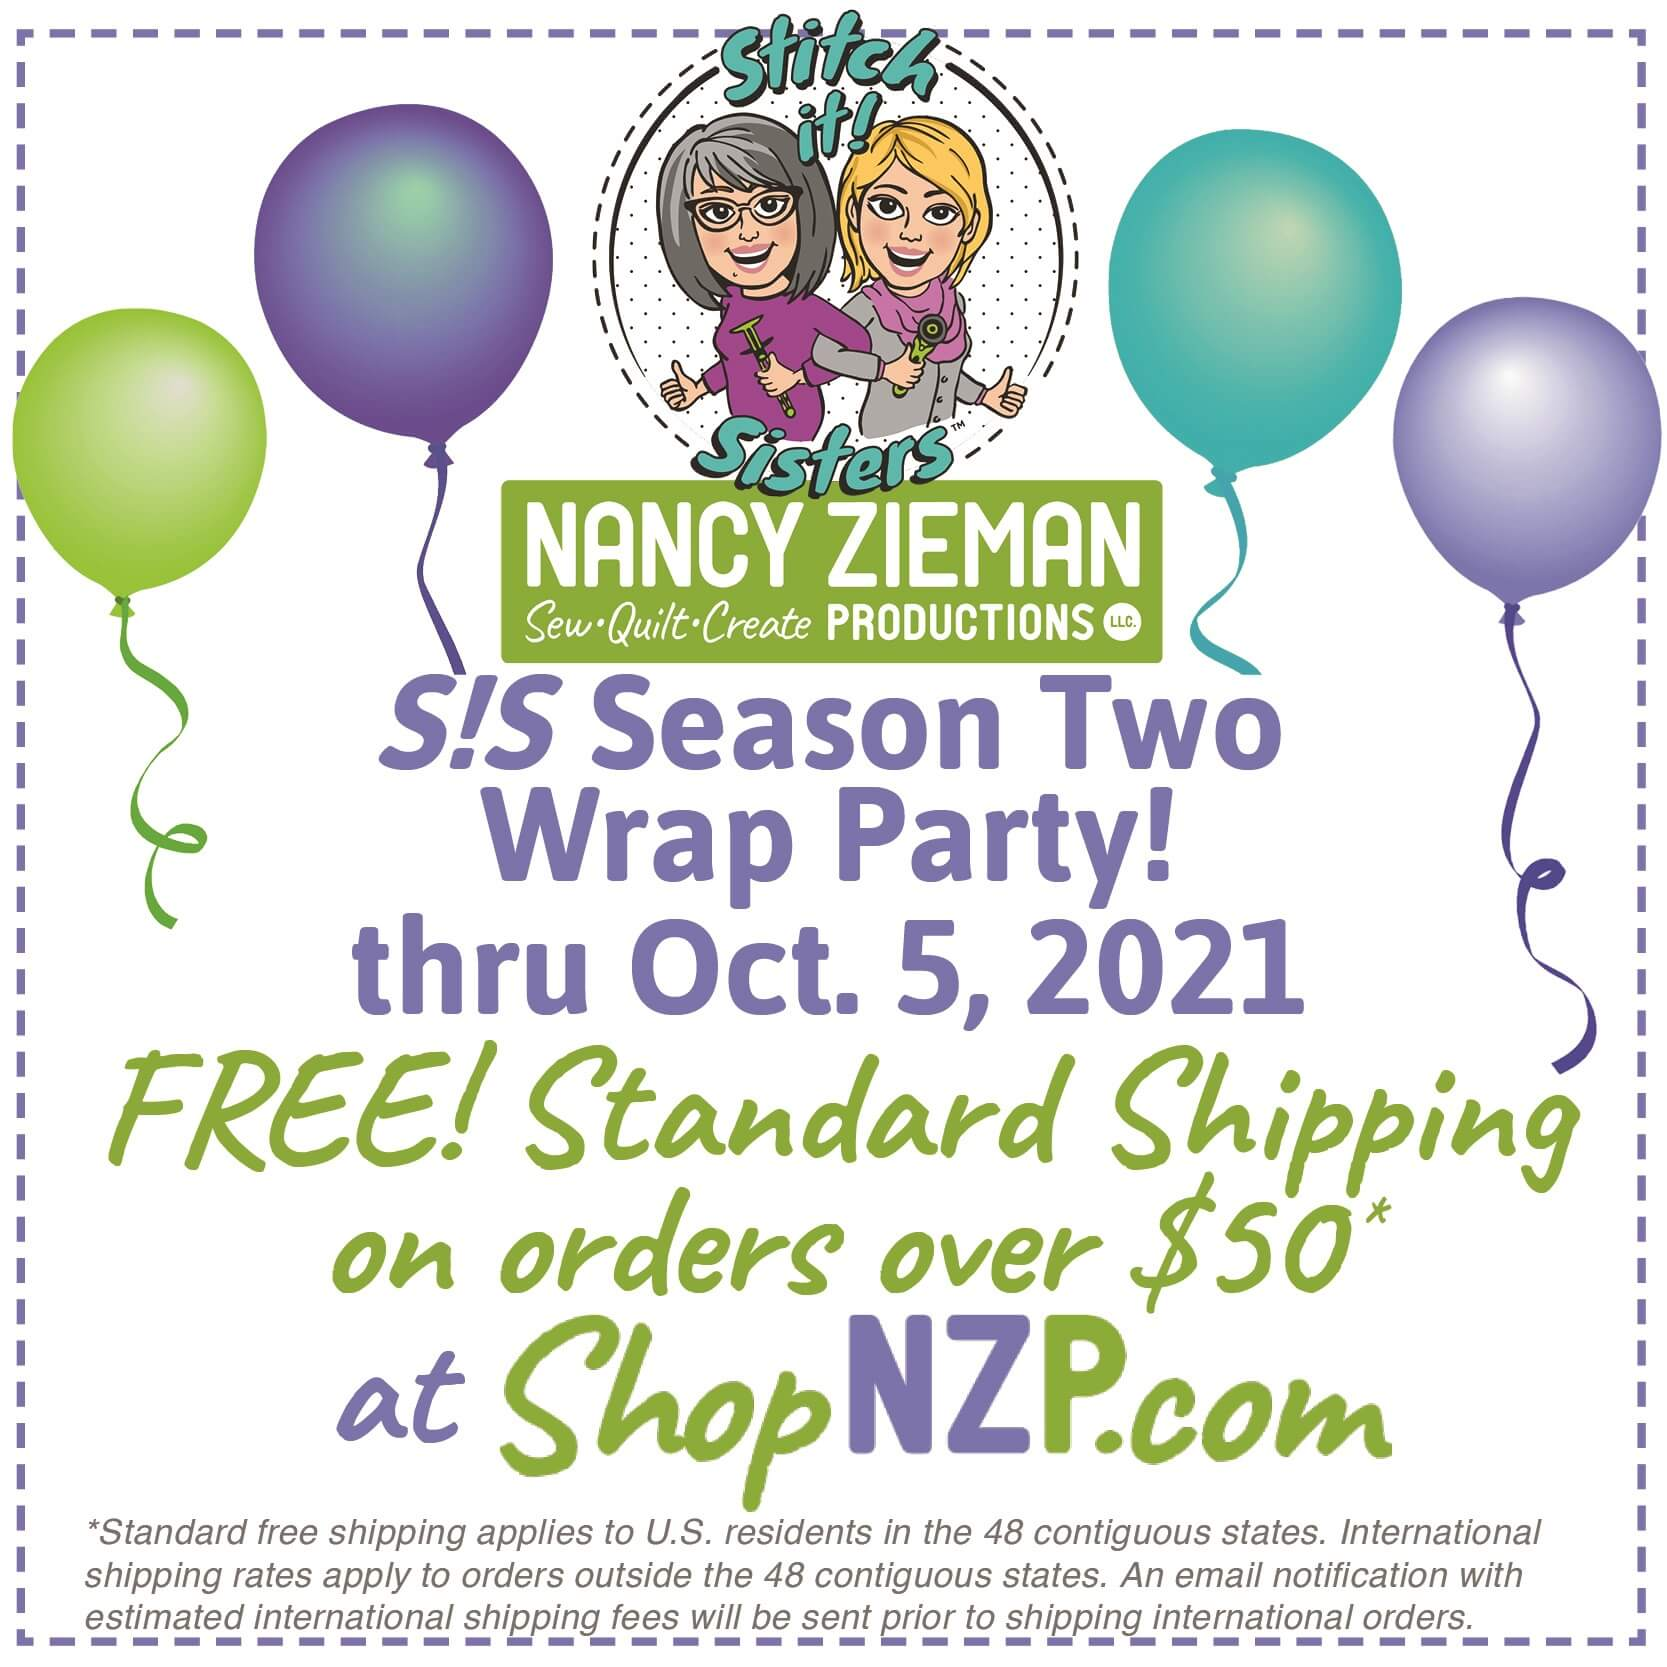 Stitch it Sisters Season Two Wrap Party! thru Oct. 5, 2021 at Nancy Zieman Productions at ShopNZP